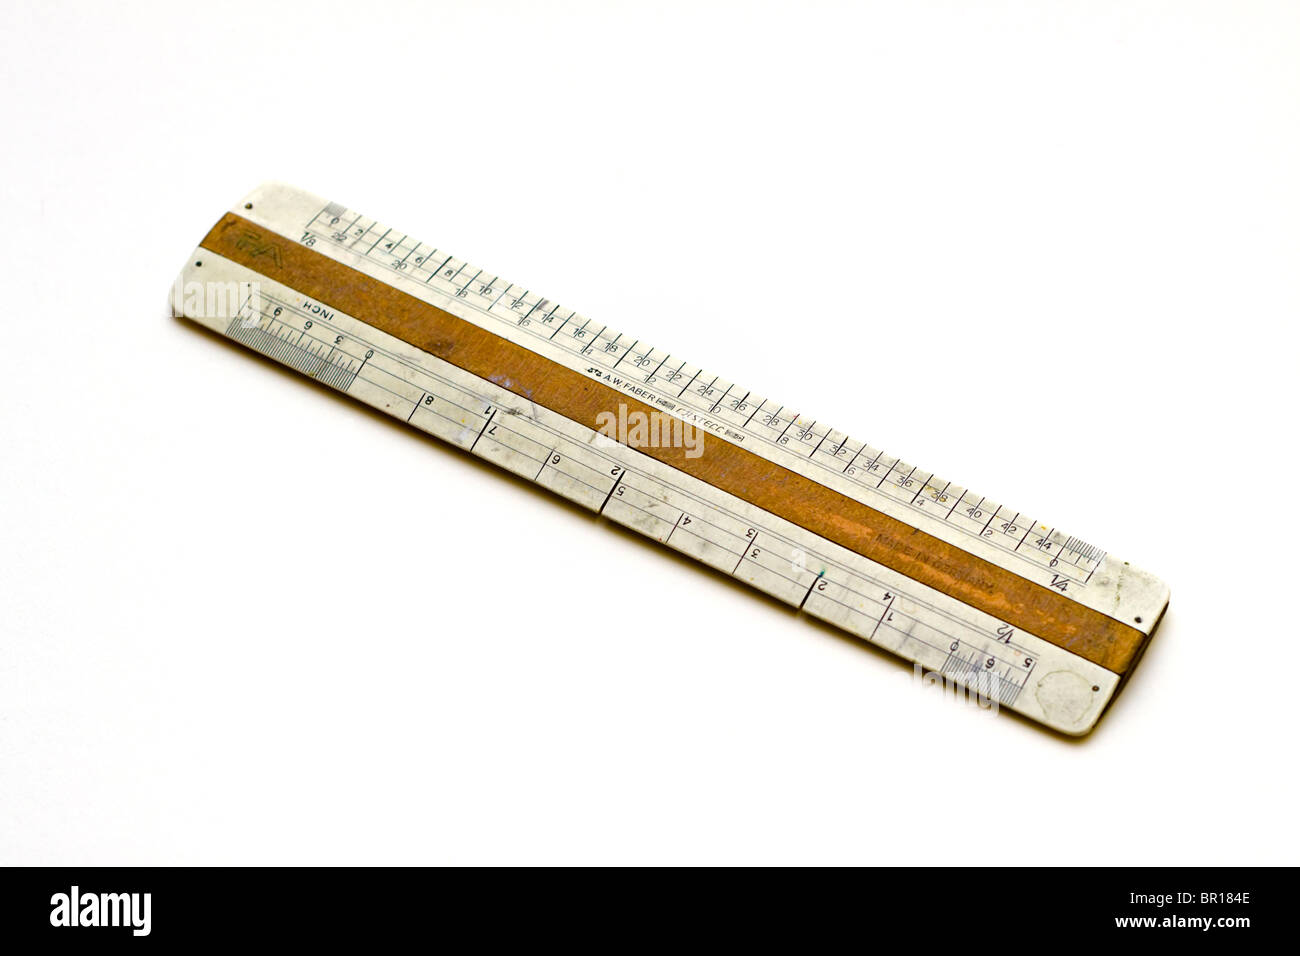 Antique ruler made by Faber Castell - Stock Image